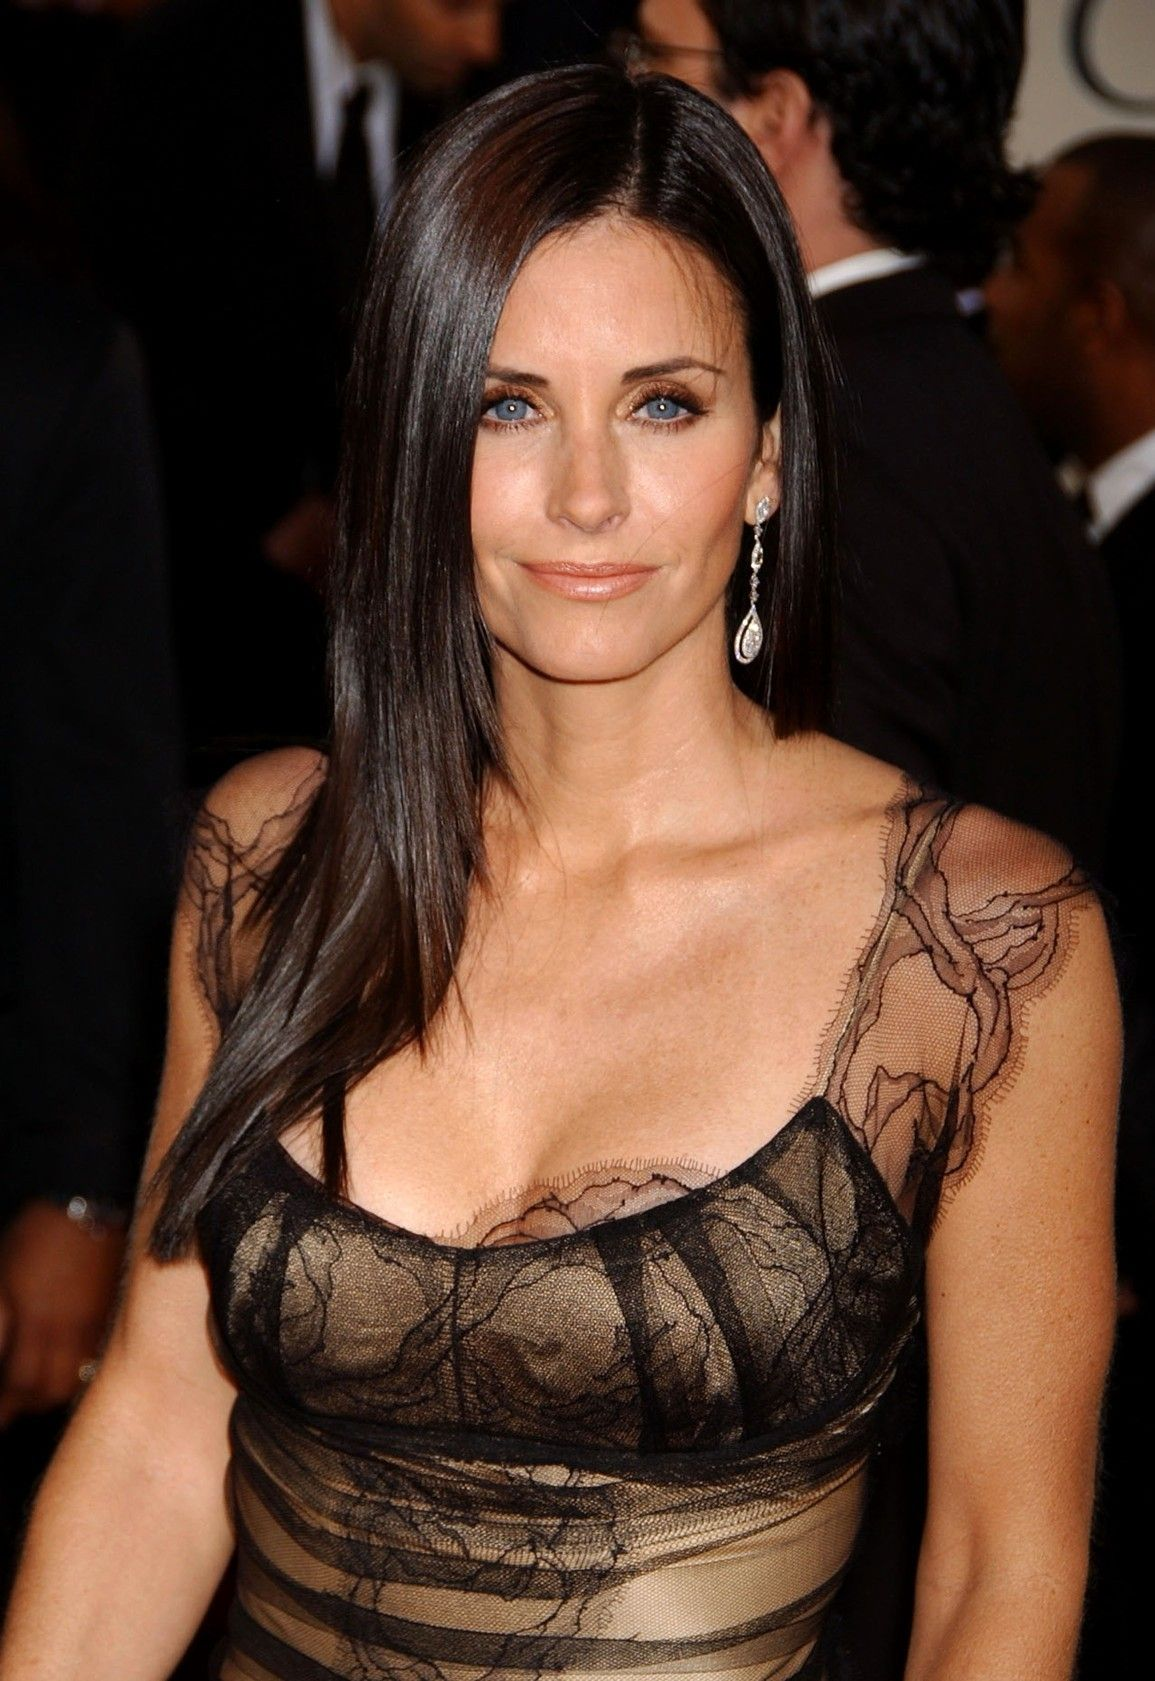 courteney cox net worthcourteney cox 2016, courteney cox 2017, courteney cox and matthew perry, courteney cox daughter, courteney cox инстаграм, courteney cox 1994, courteney cox vk, courteney cox iron maidens, courteney cox instagram official, courteney cox arquette friends, courteney cox dance, courteney cox and johnny mcdaid, courteney cox style dance, courteney cox movies, courteney cox age, courteney cox gif, courteney cox net worth, courteney cox beautiful, courteney cox family, courteney cox workout